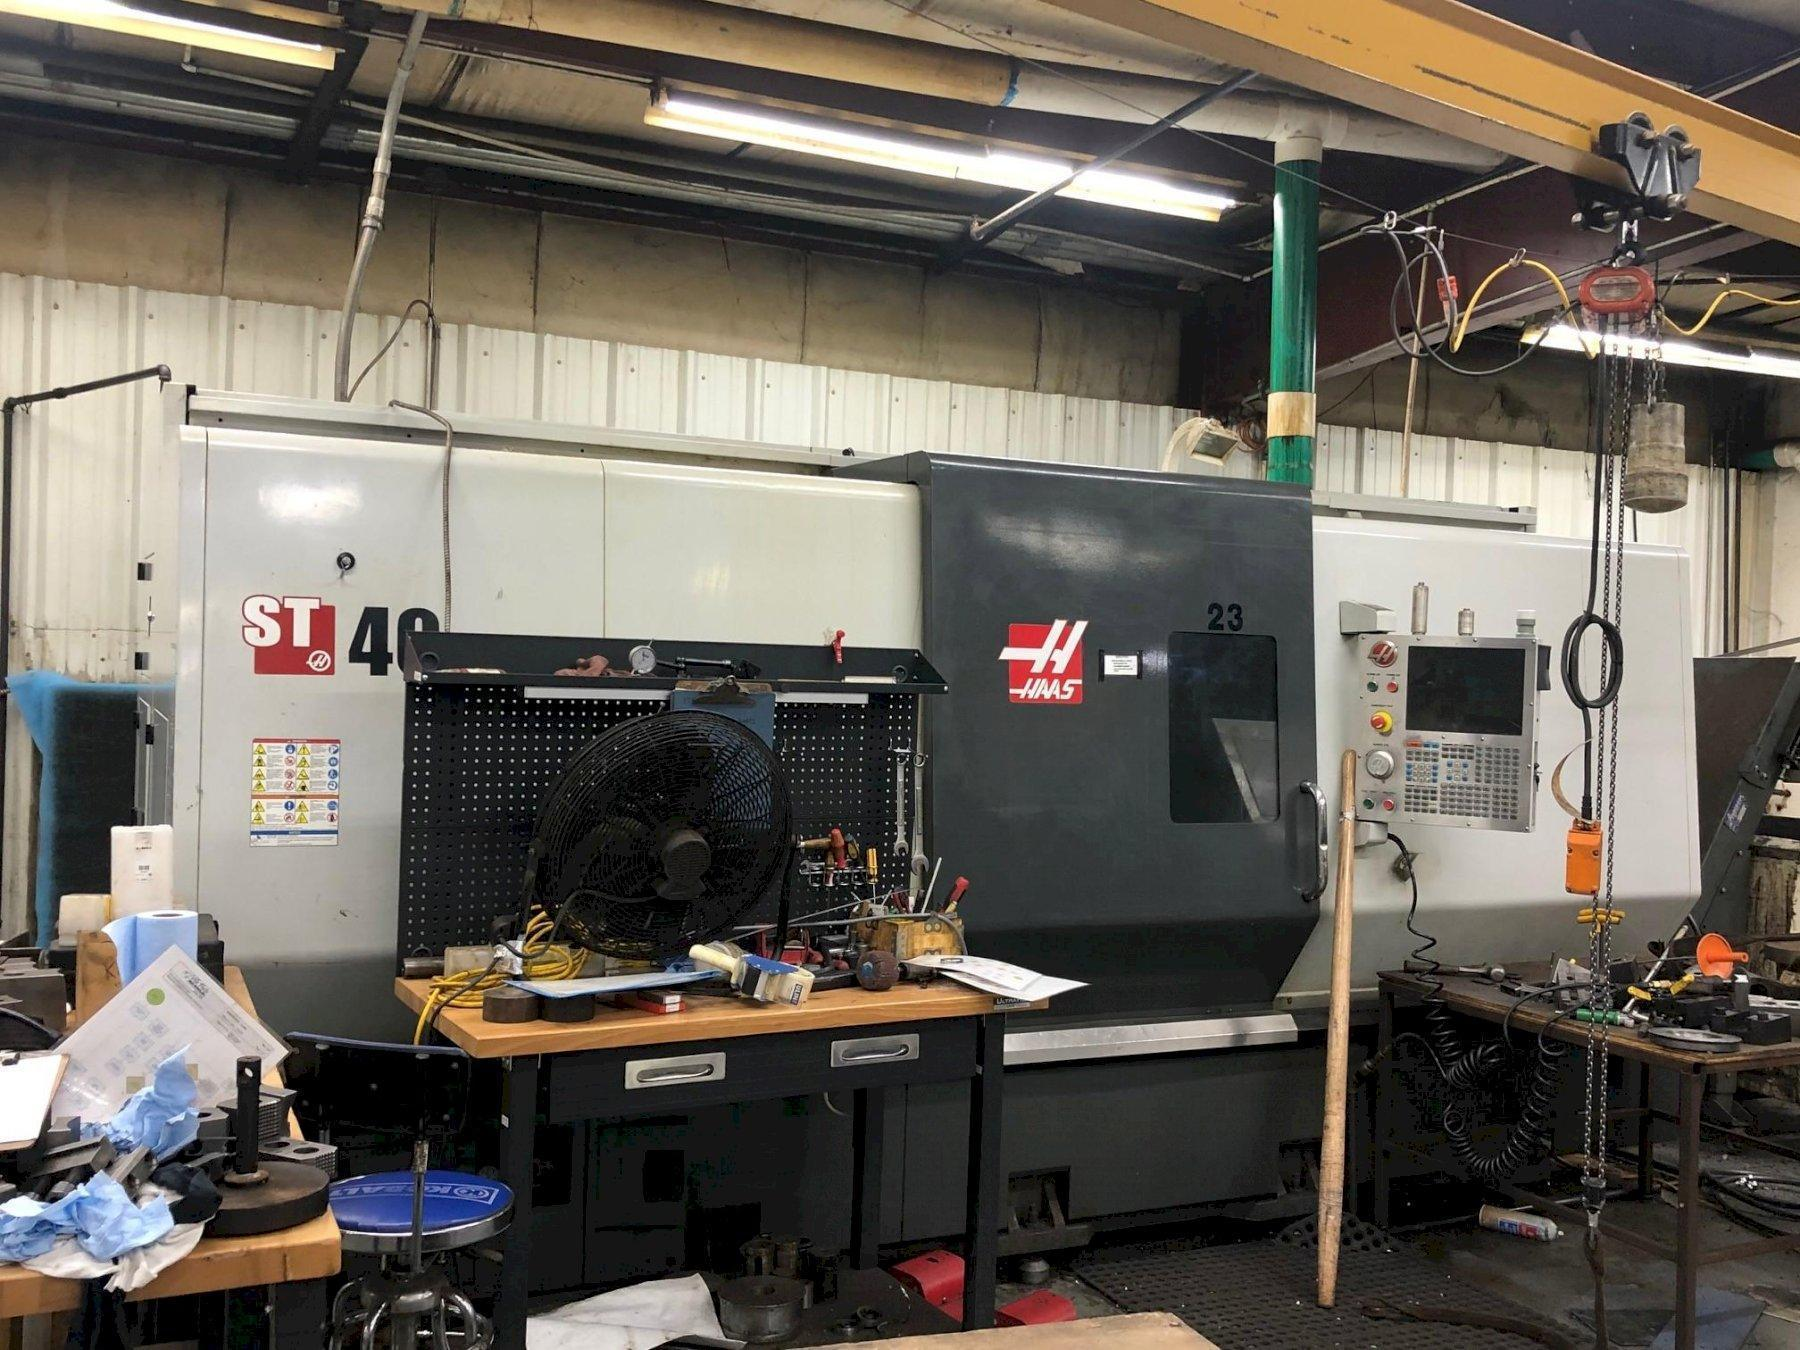 Haas ST-40 CNC Lathe, with 18' 3-Jaw Chuck, 12 Position Turret, Tailstock, Chip Conveyor, Haas Ctrl, Tooling Touch Probe,